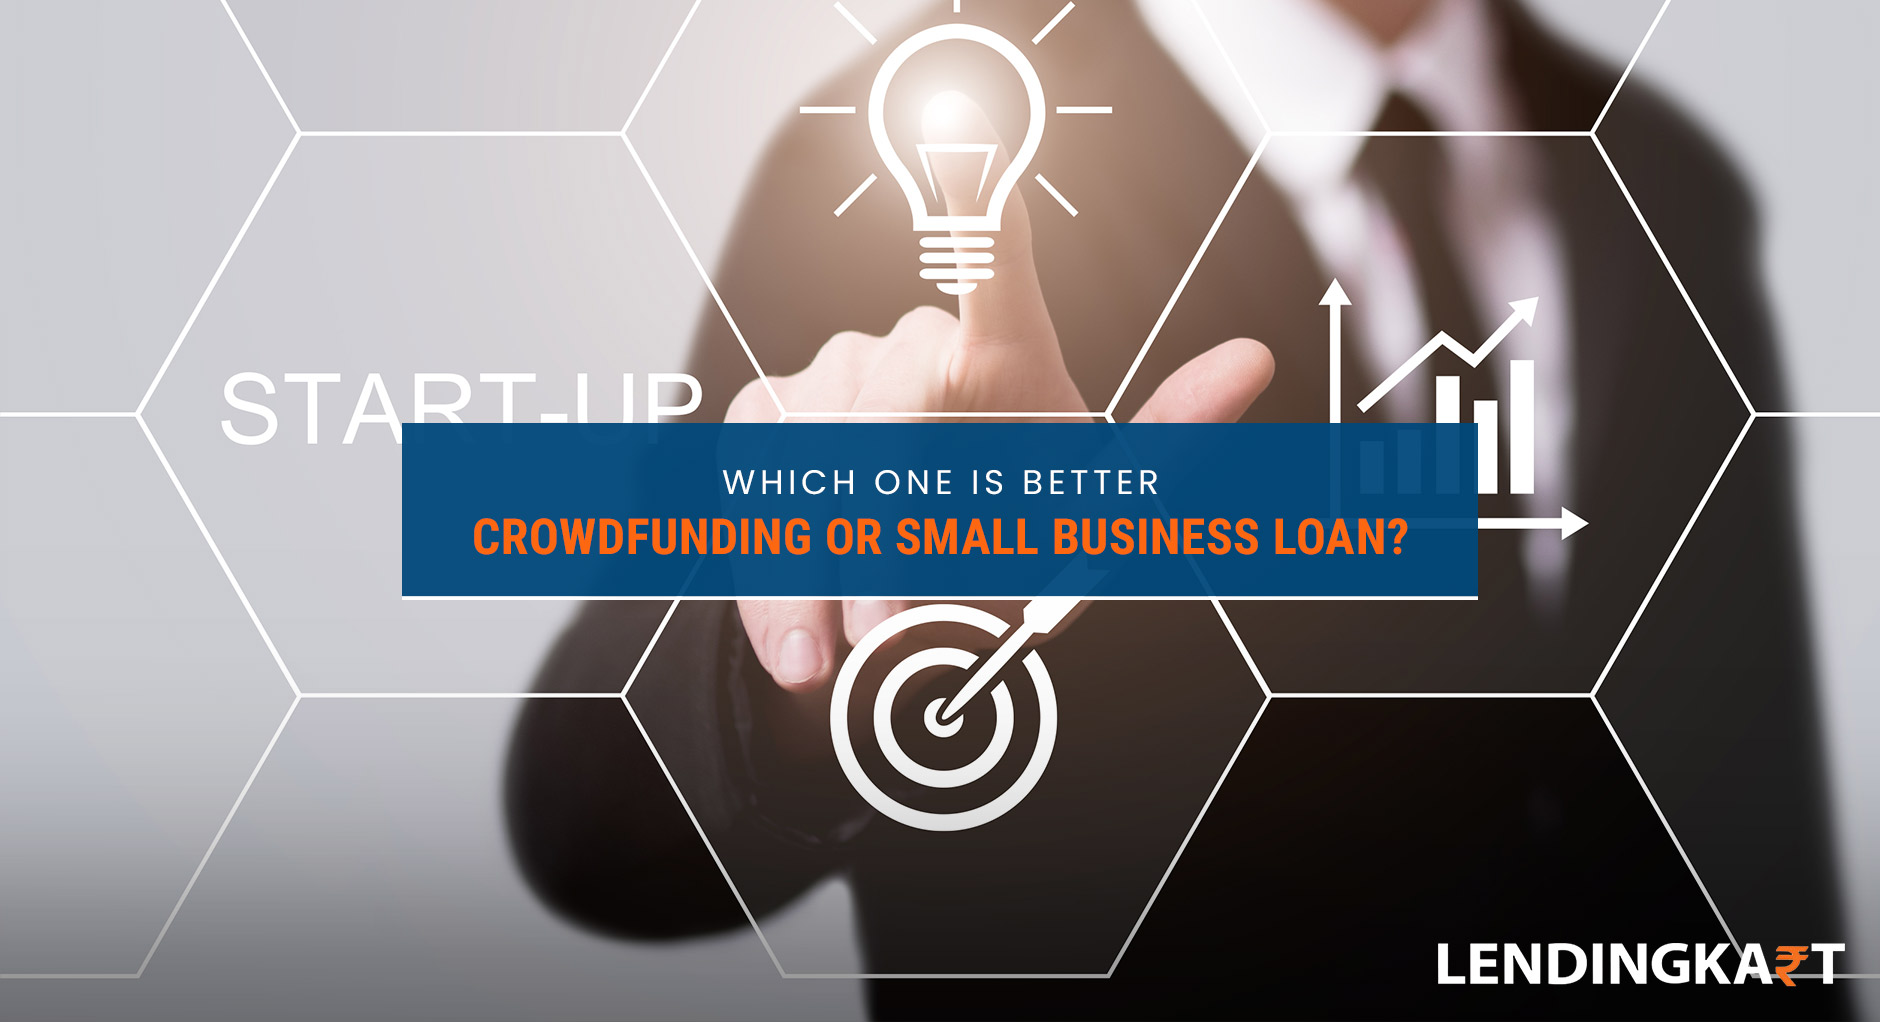 Which one is better, Crowdfunding or Small Business Loan